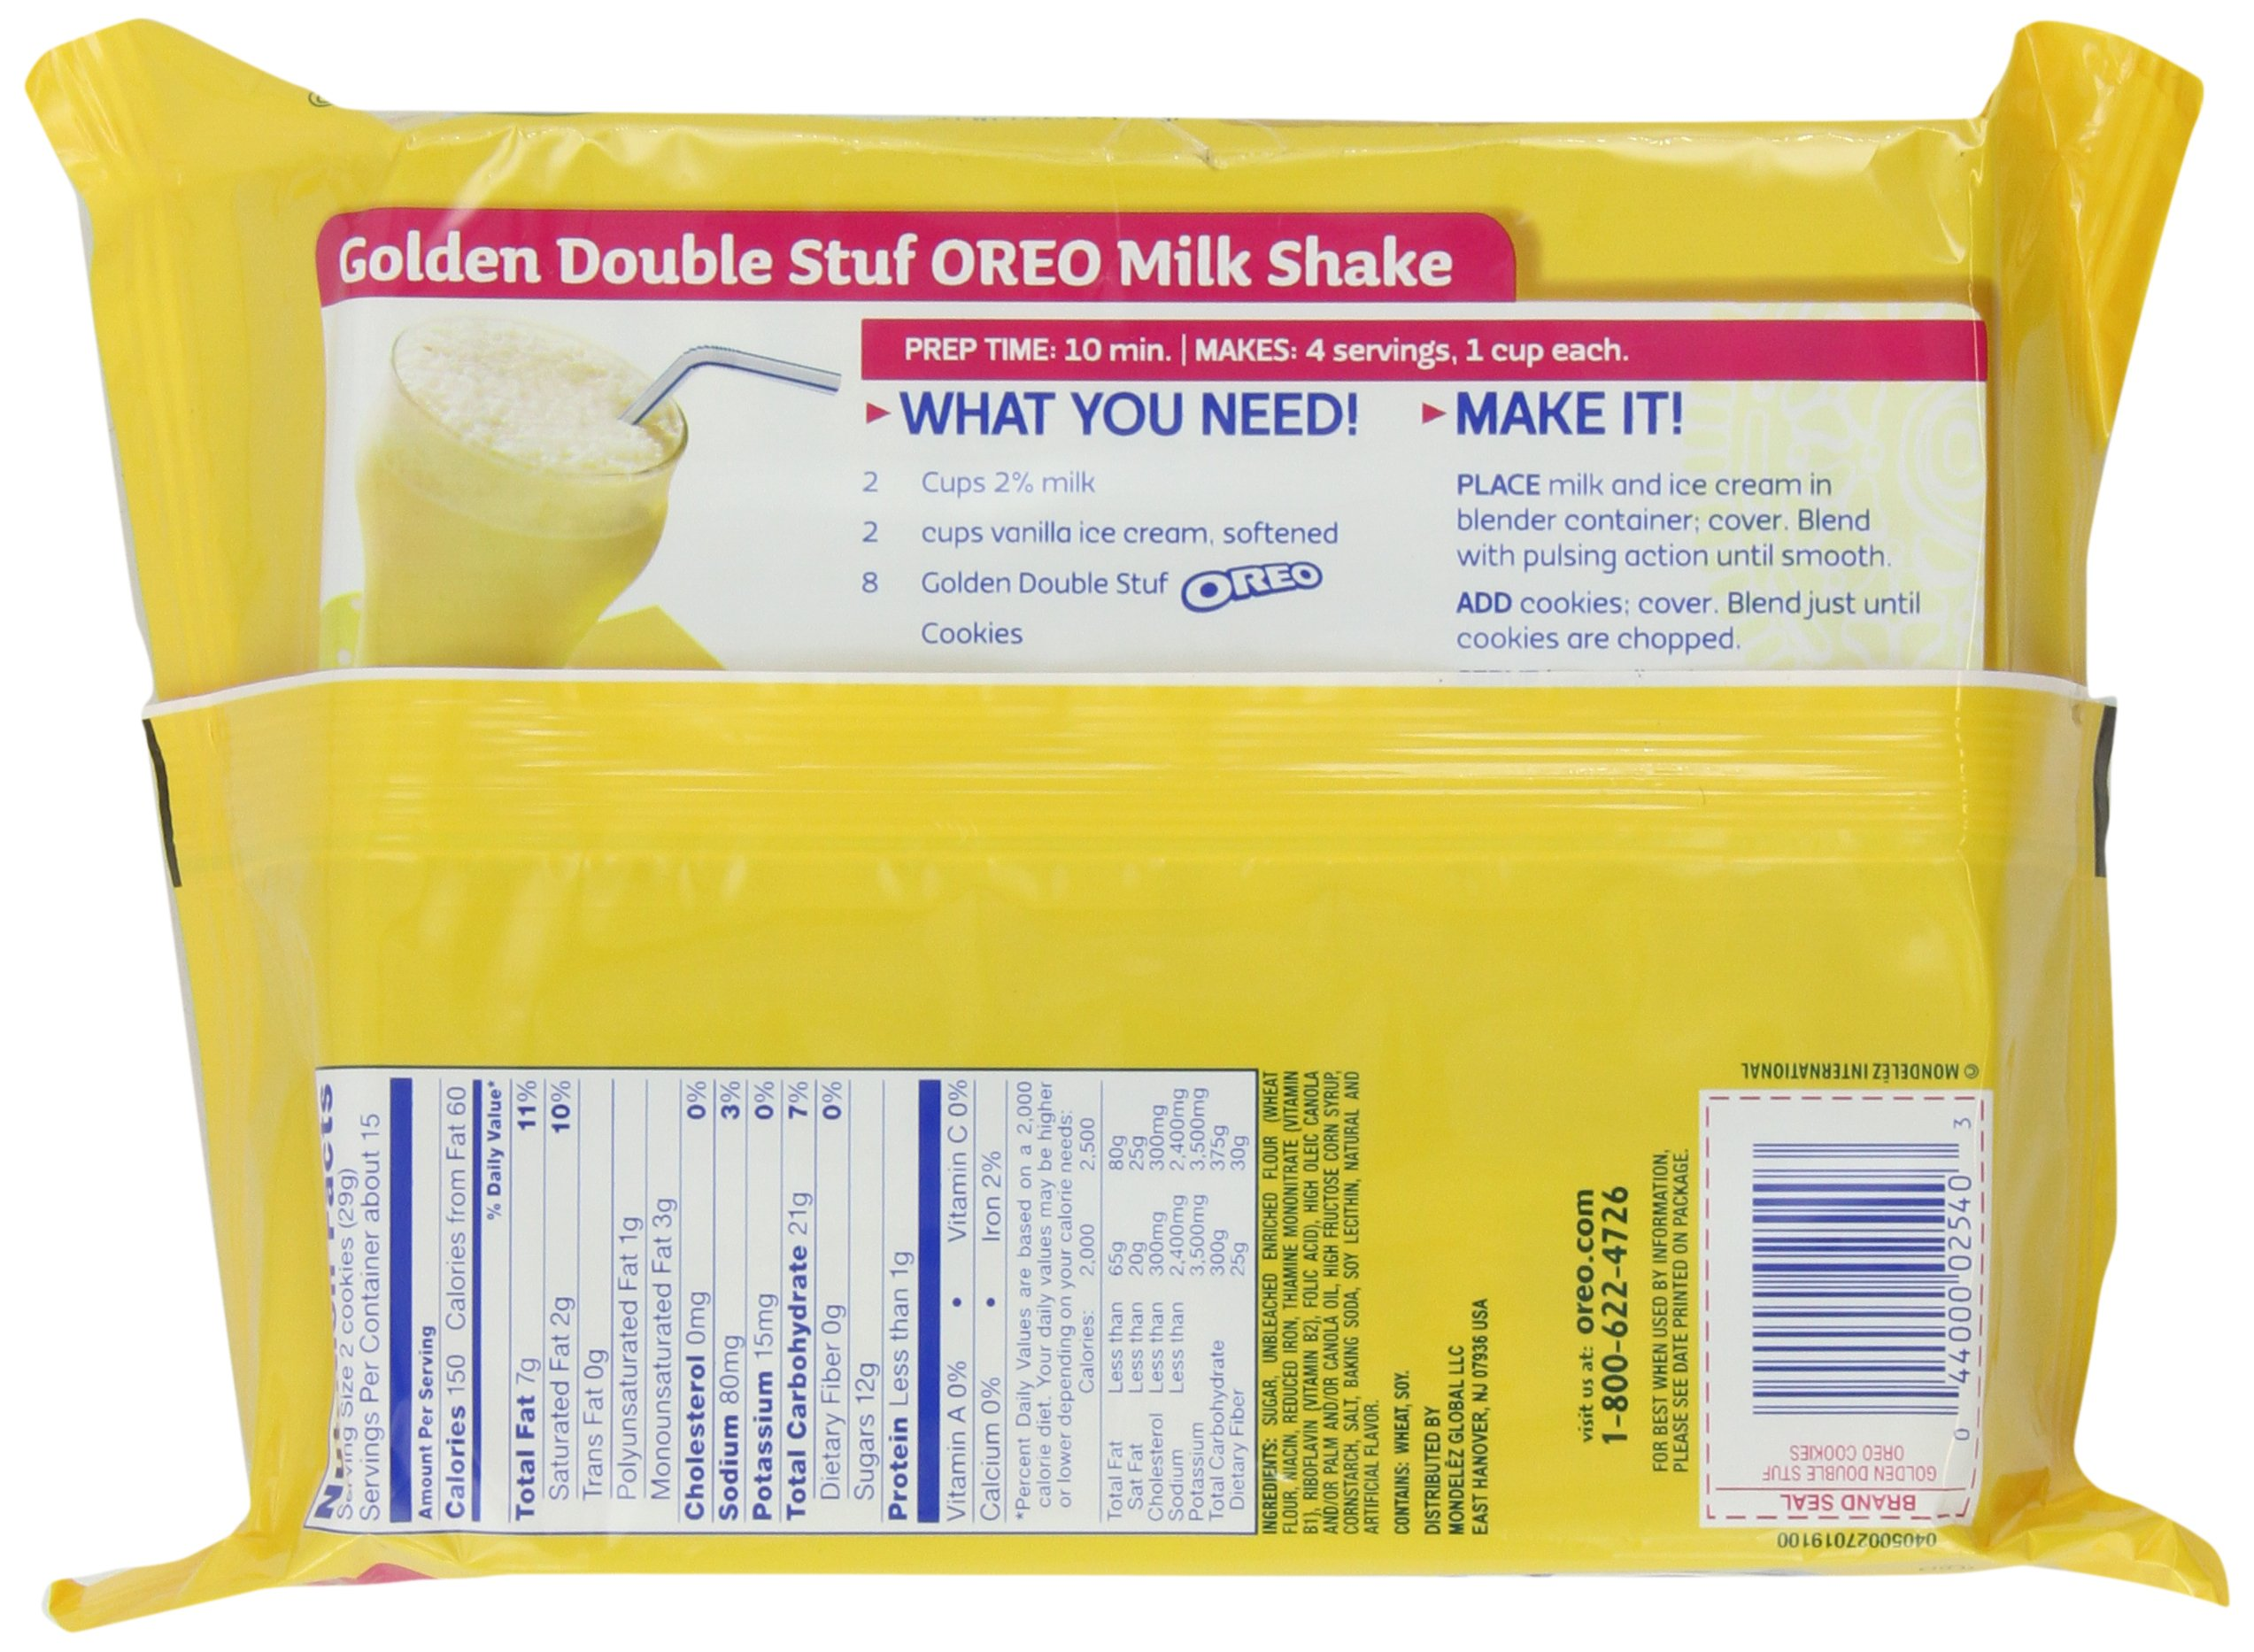 Oreo Golden Double Stuf Sandwich Cookies, Original, 15.25-Ounce (Pack of 6) by Oreo (Image #1)